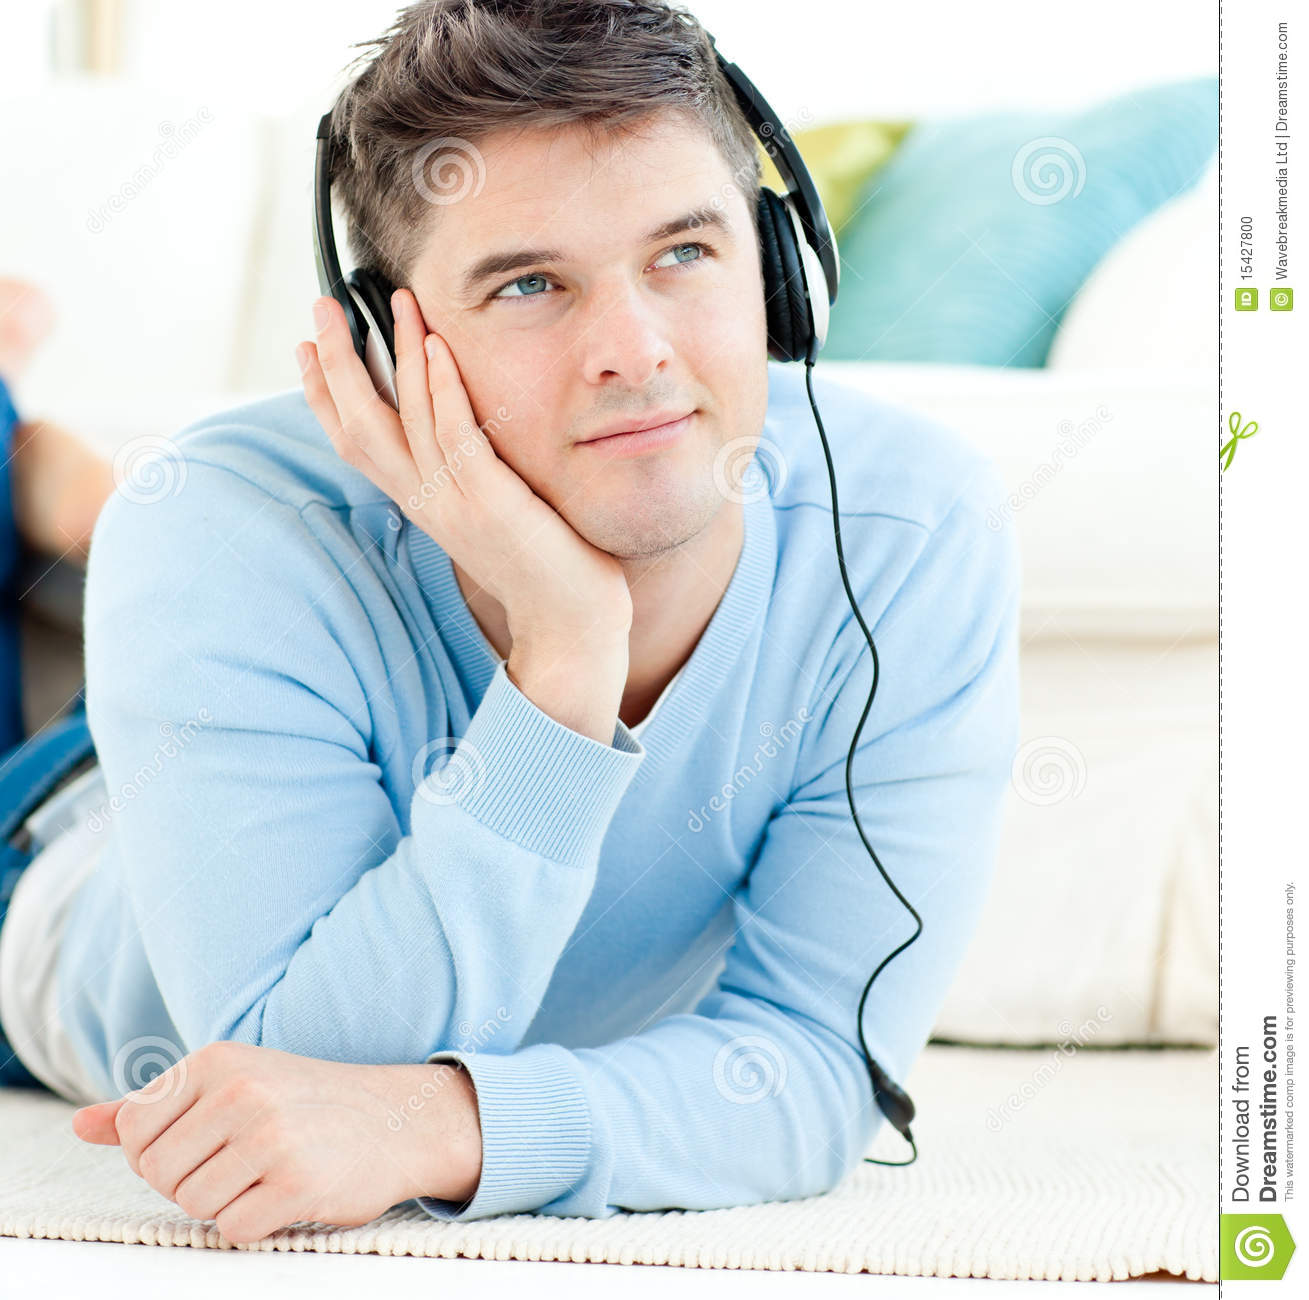 Positive man with headphones lying on the floor in the living room